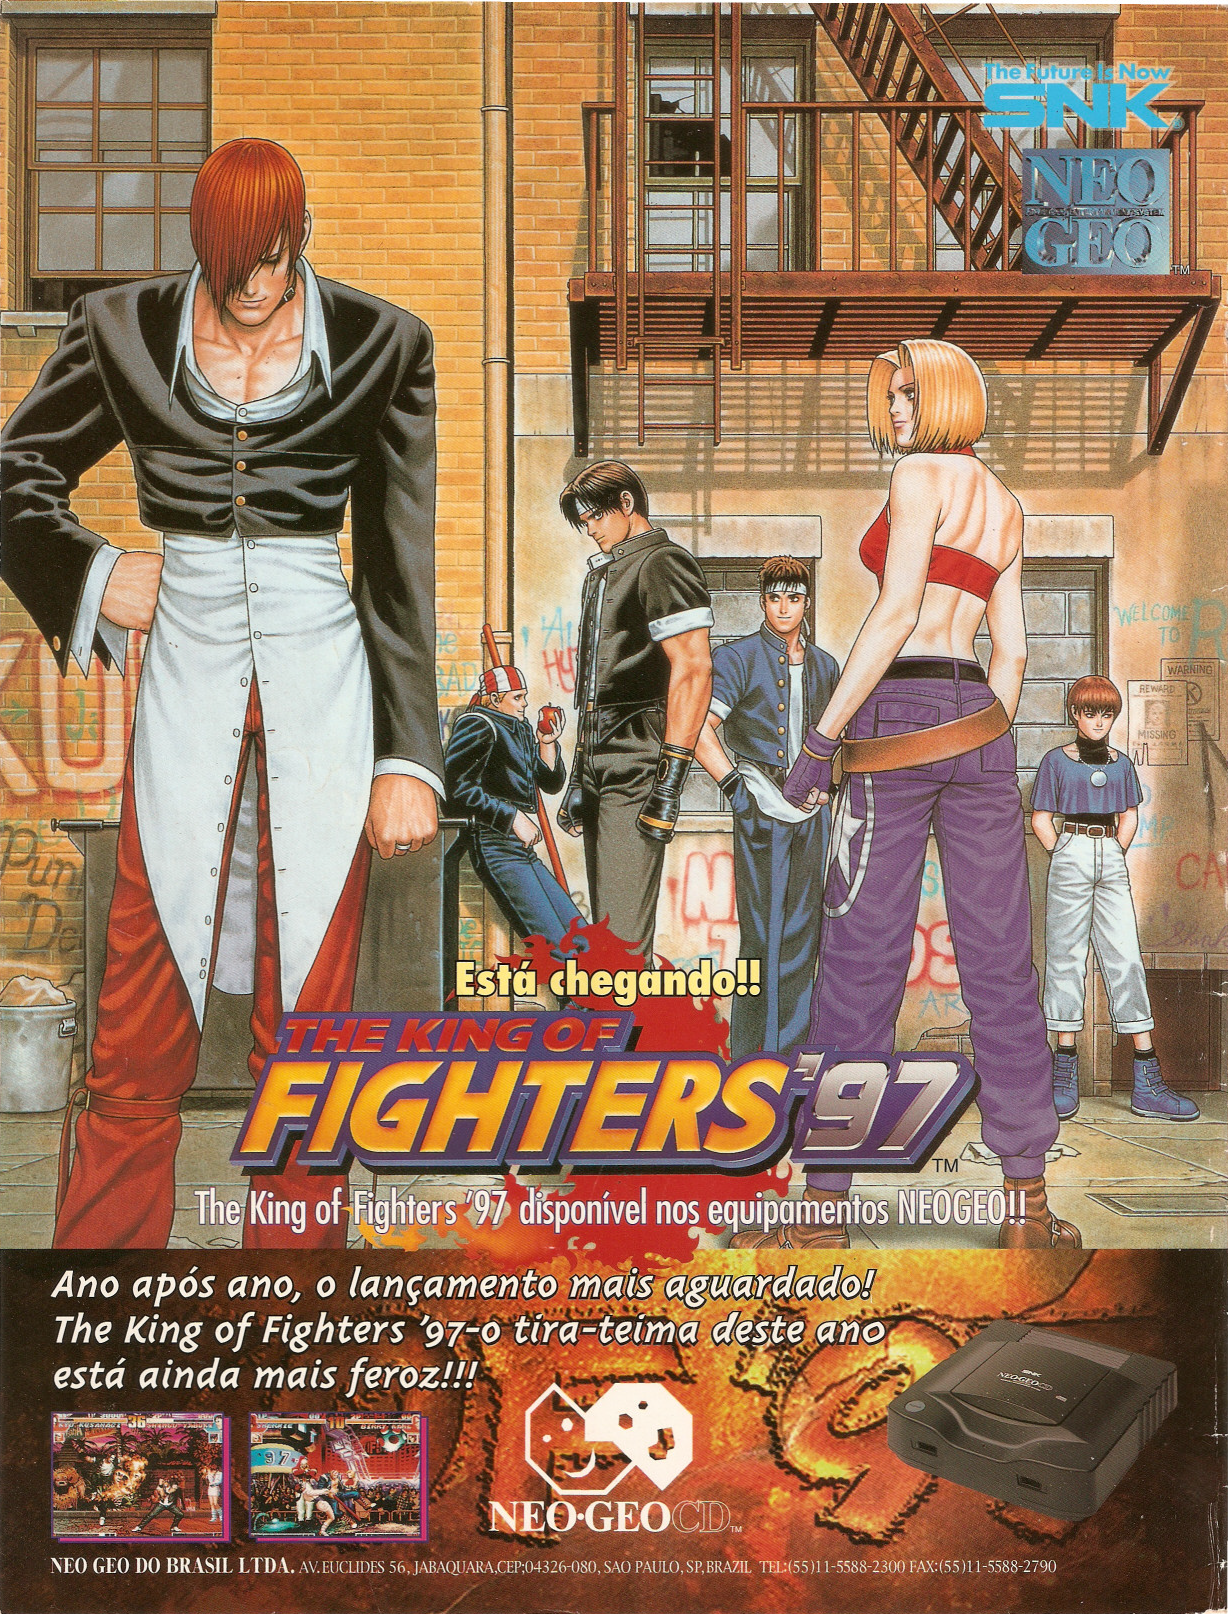 The King Of Fighters 97 1997 Promotional Art Mobygames